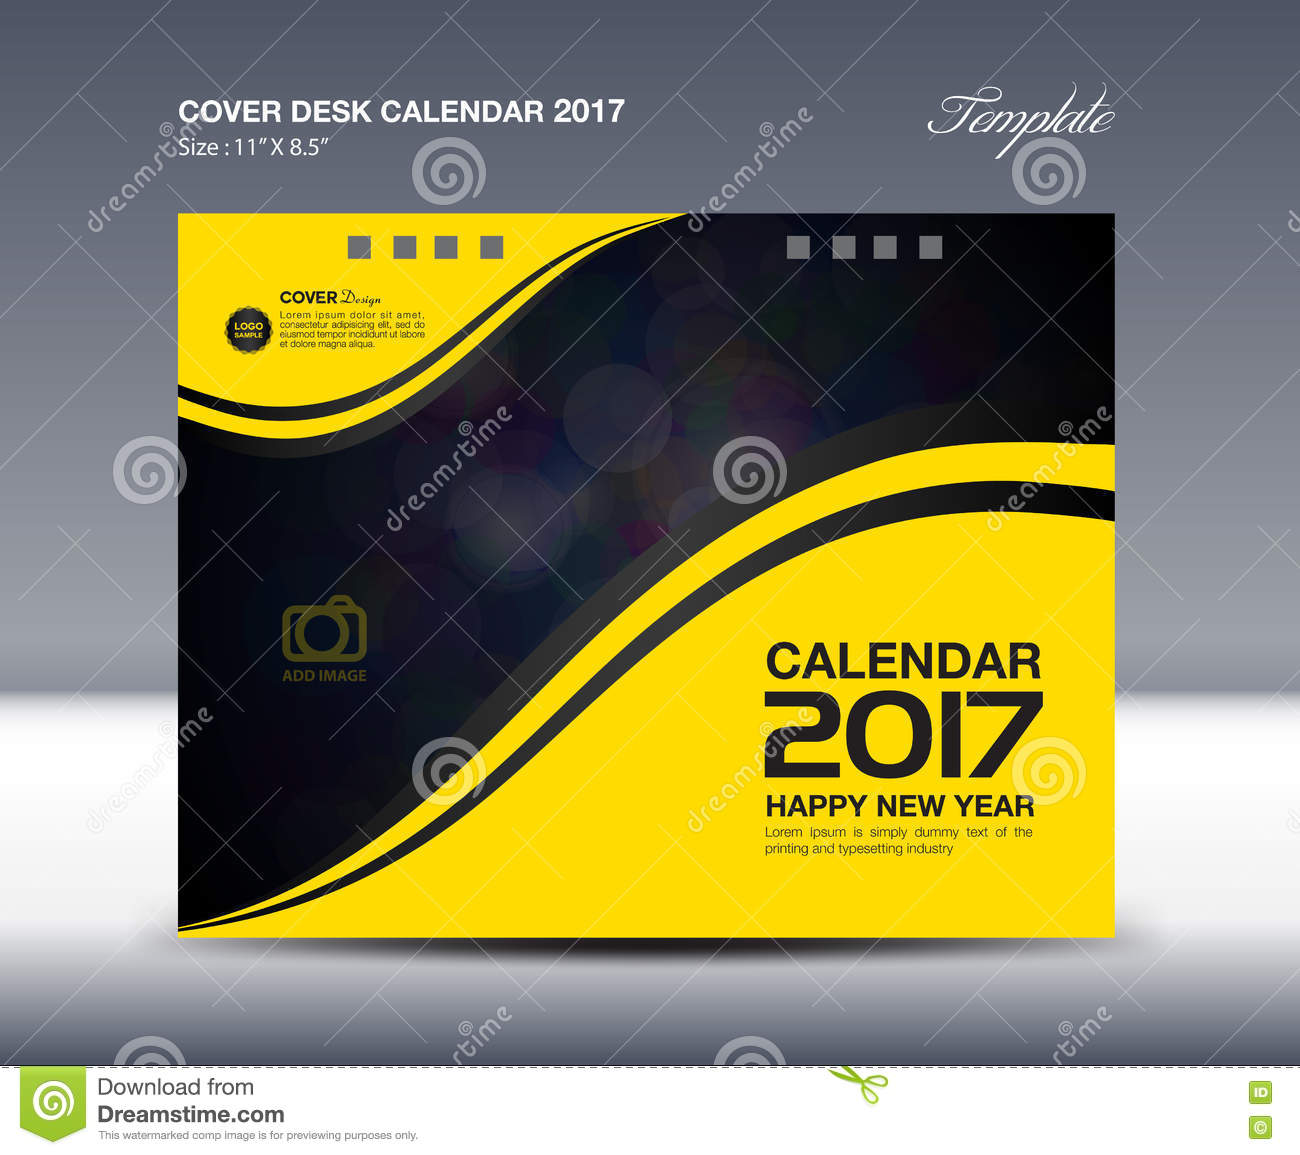 Calendar Cover Design 2014 : Desk calendar for year yellow cover